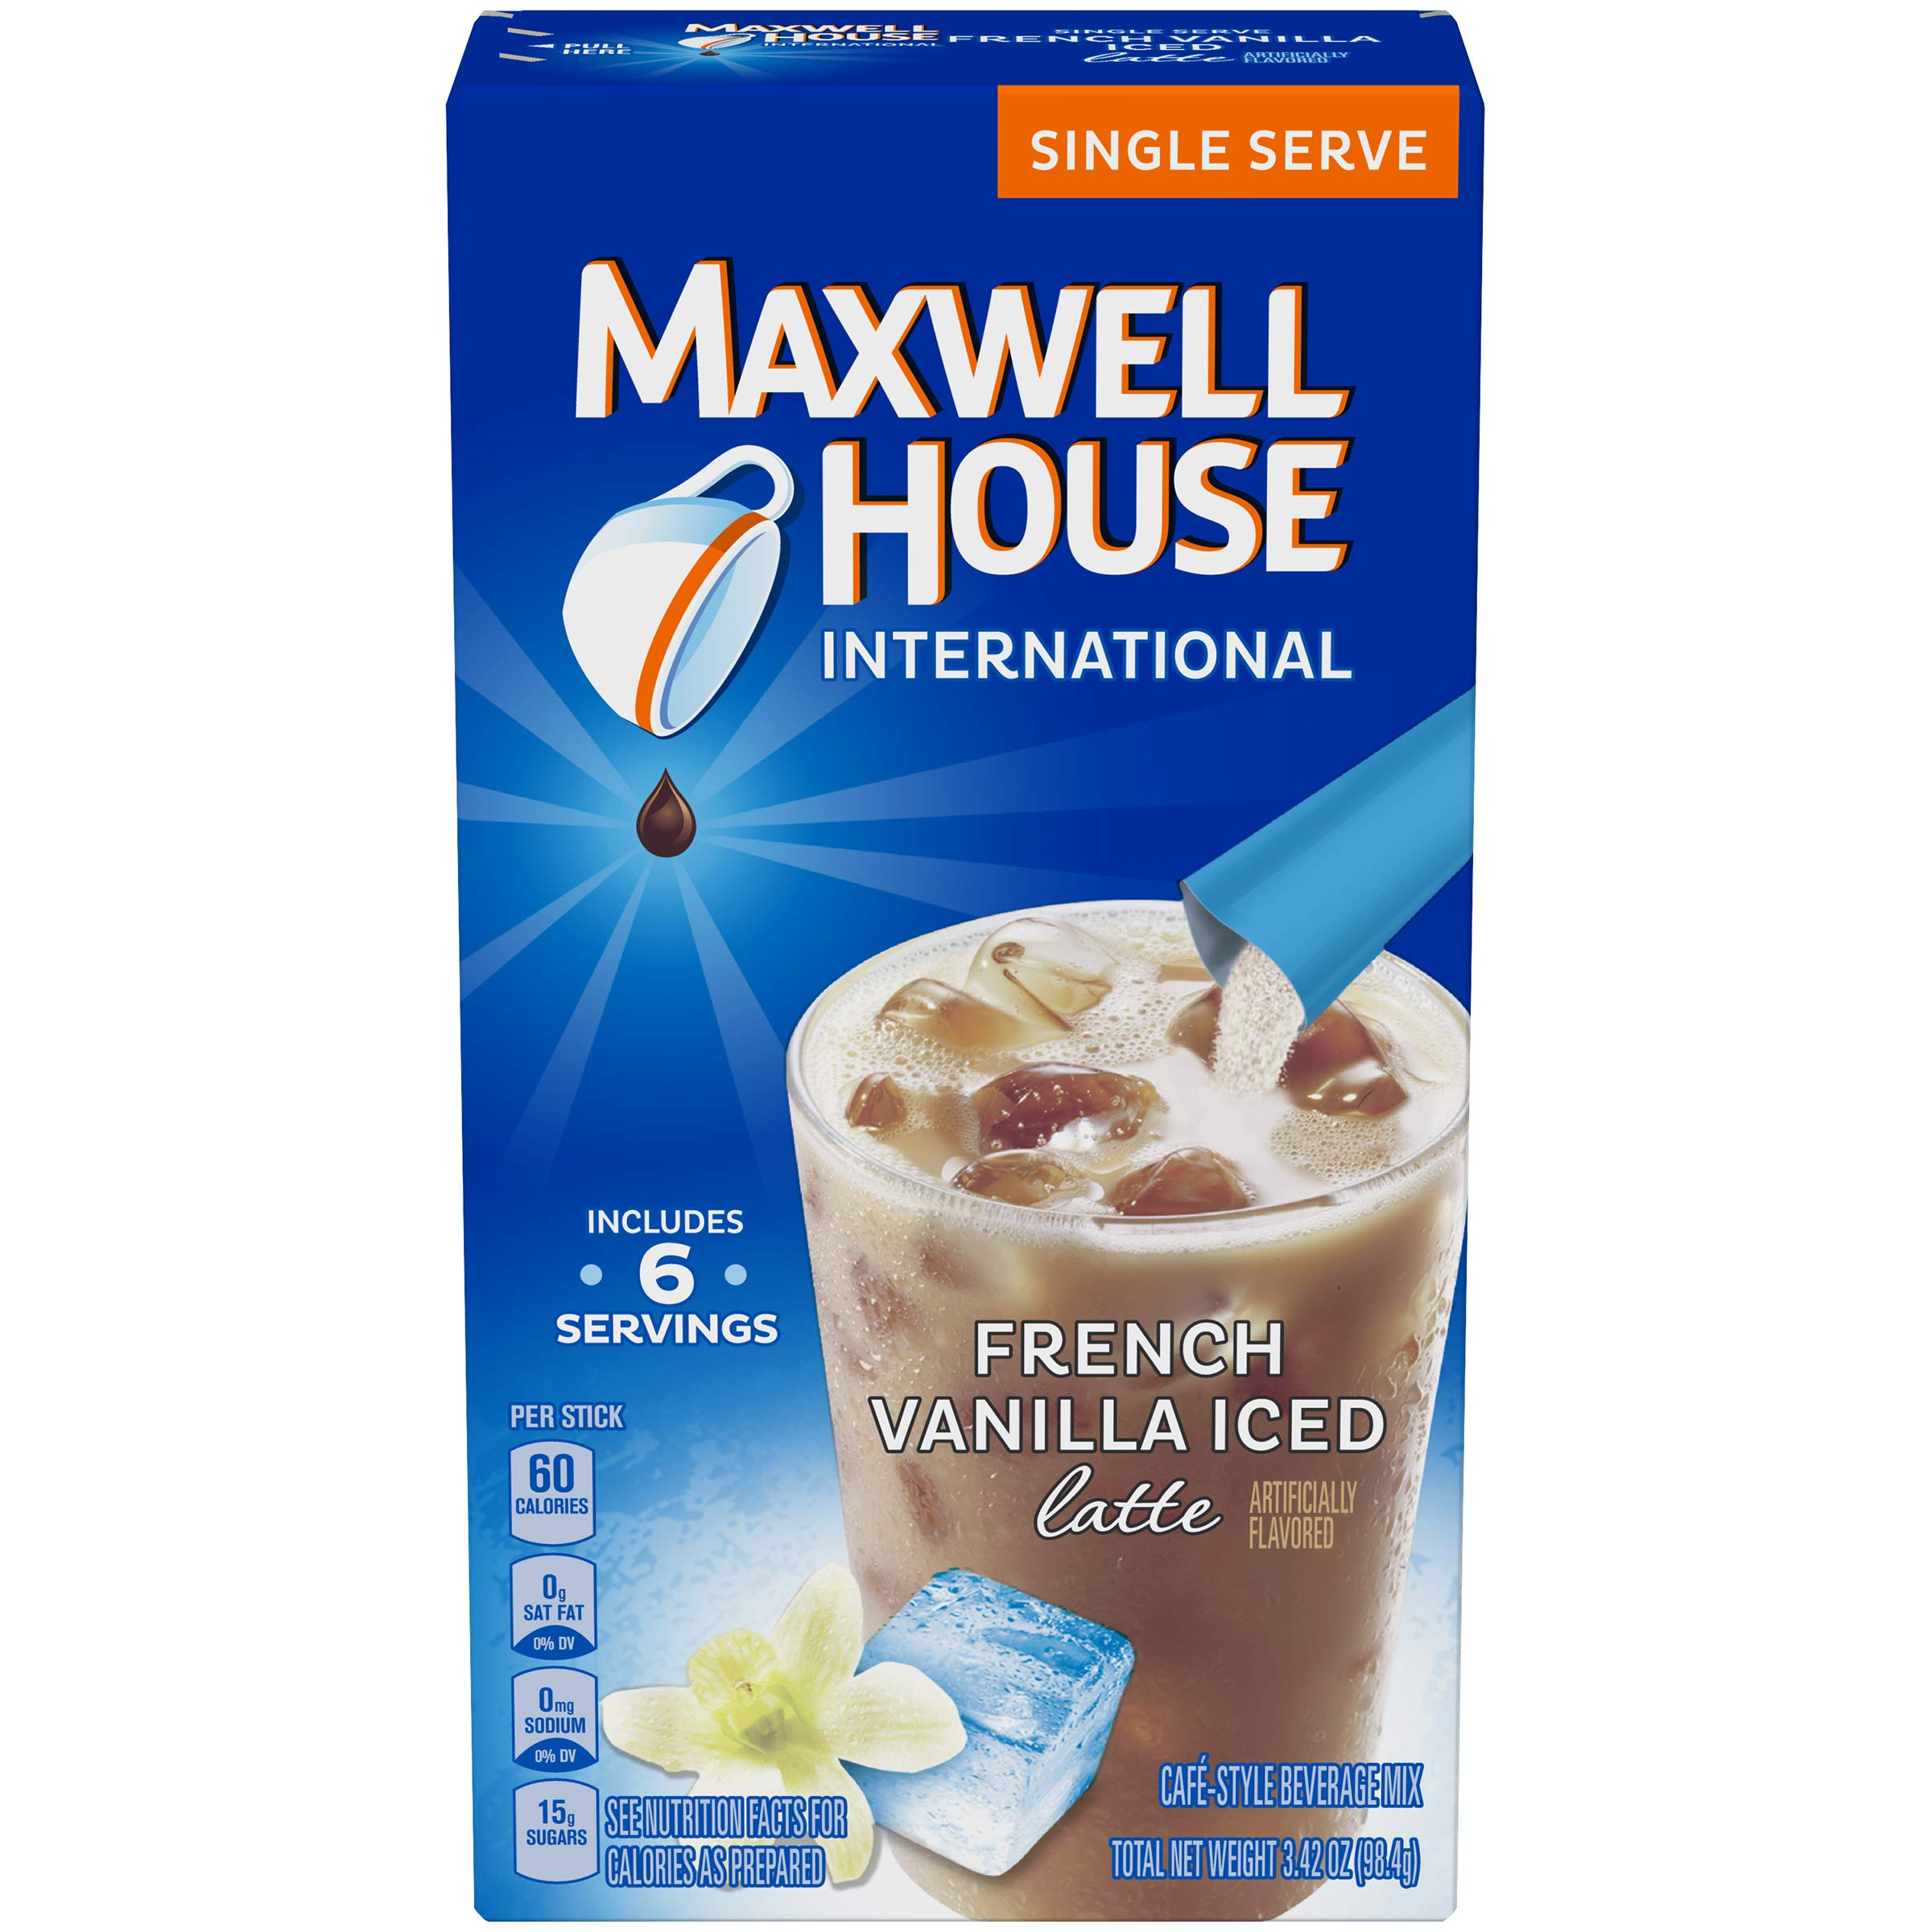 Maxwell House International French Vanilla Iced Latte Cafe-Style Beverage Mix, Caffeinated, 6 - 0.57 oz Packets (Pack of 8) by MAXWELL HOUSE